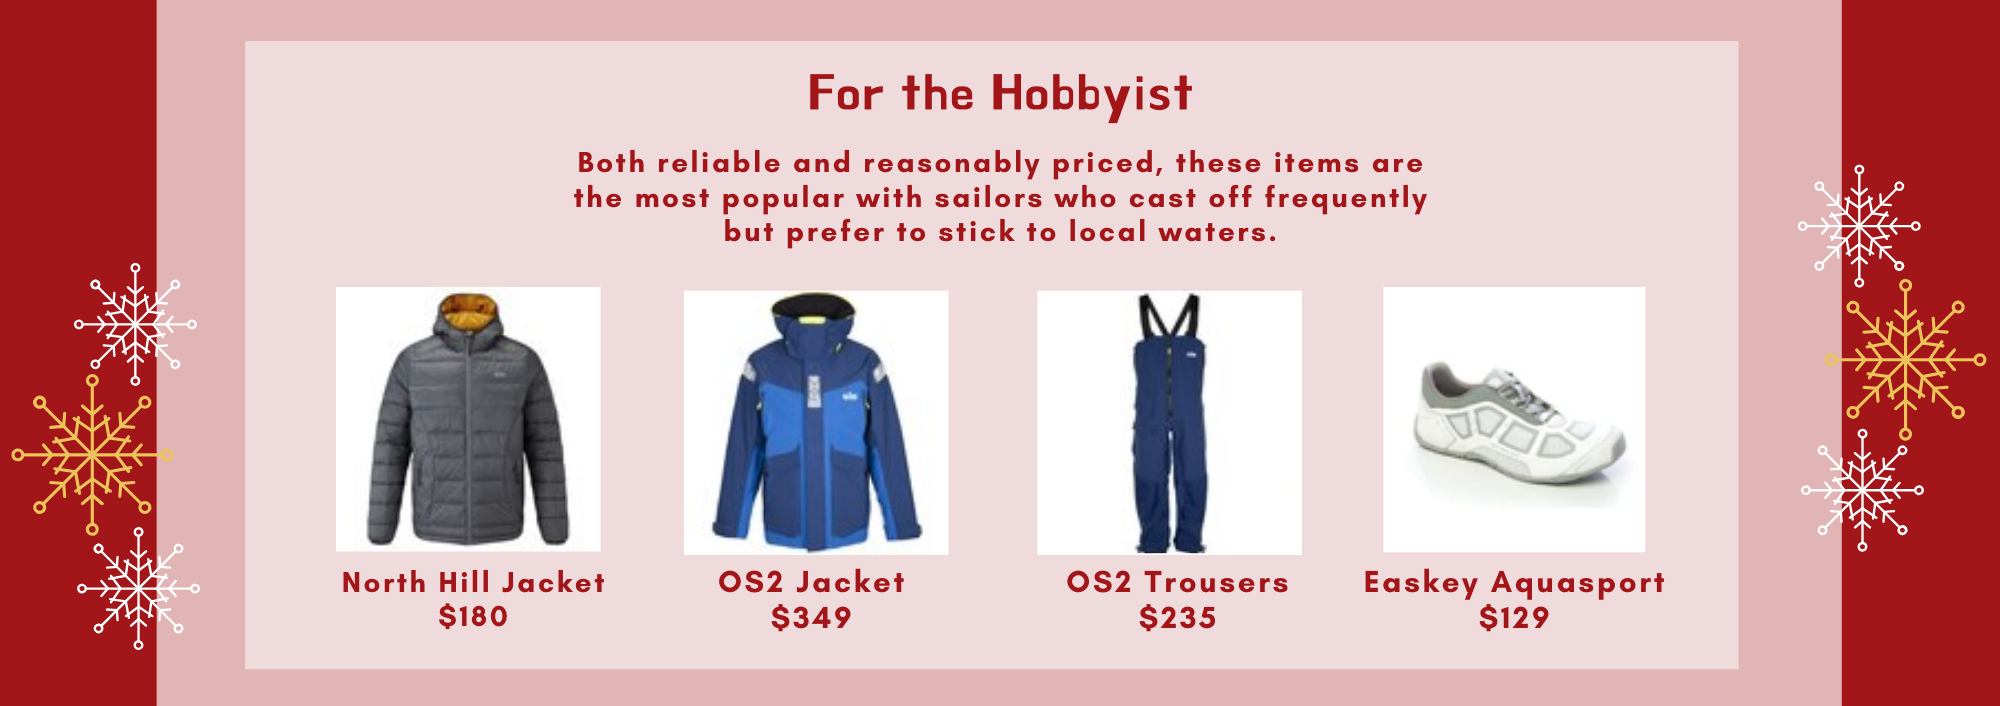 gift-guide-2019-pg-3.png